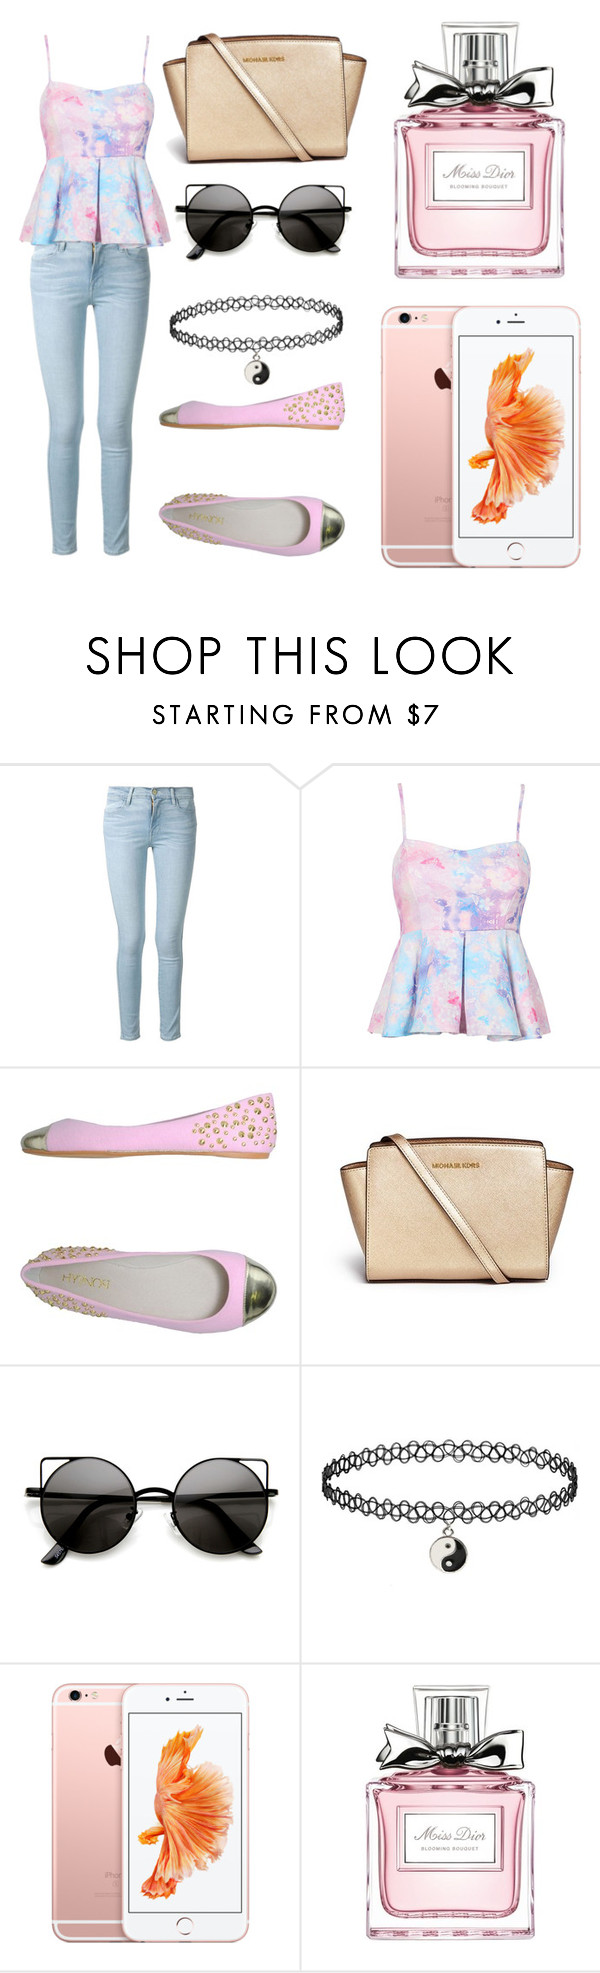 """Без названия #2"" by kuklo-nasty ❤ liked on Polyvore featuring Frame Denim, Hypnosi, Michael Kors, Christian Dior, women's clothing, women's fashion, women, female, woman and misses"